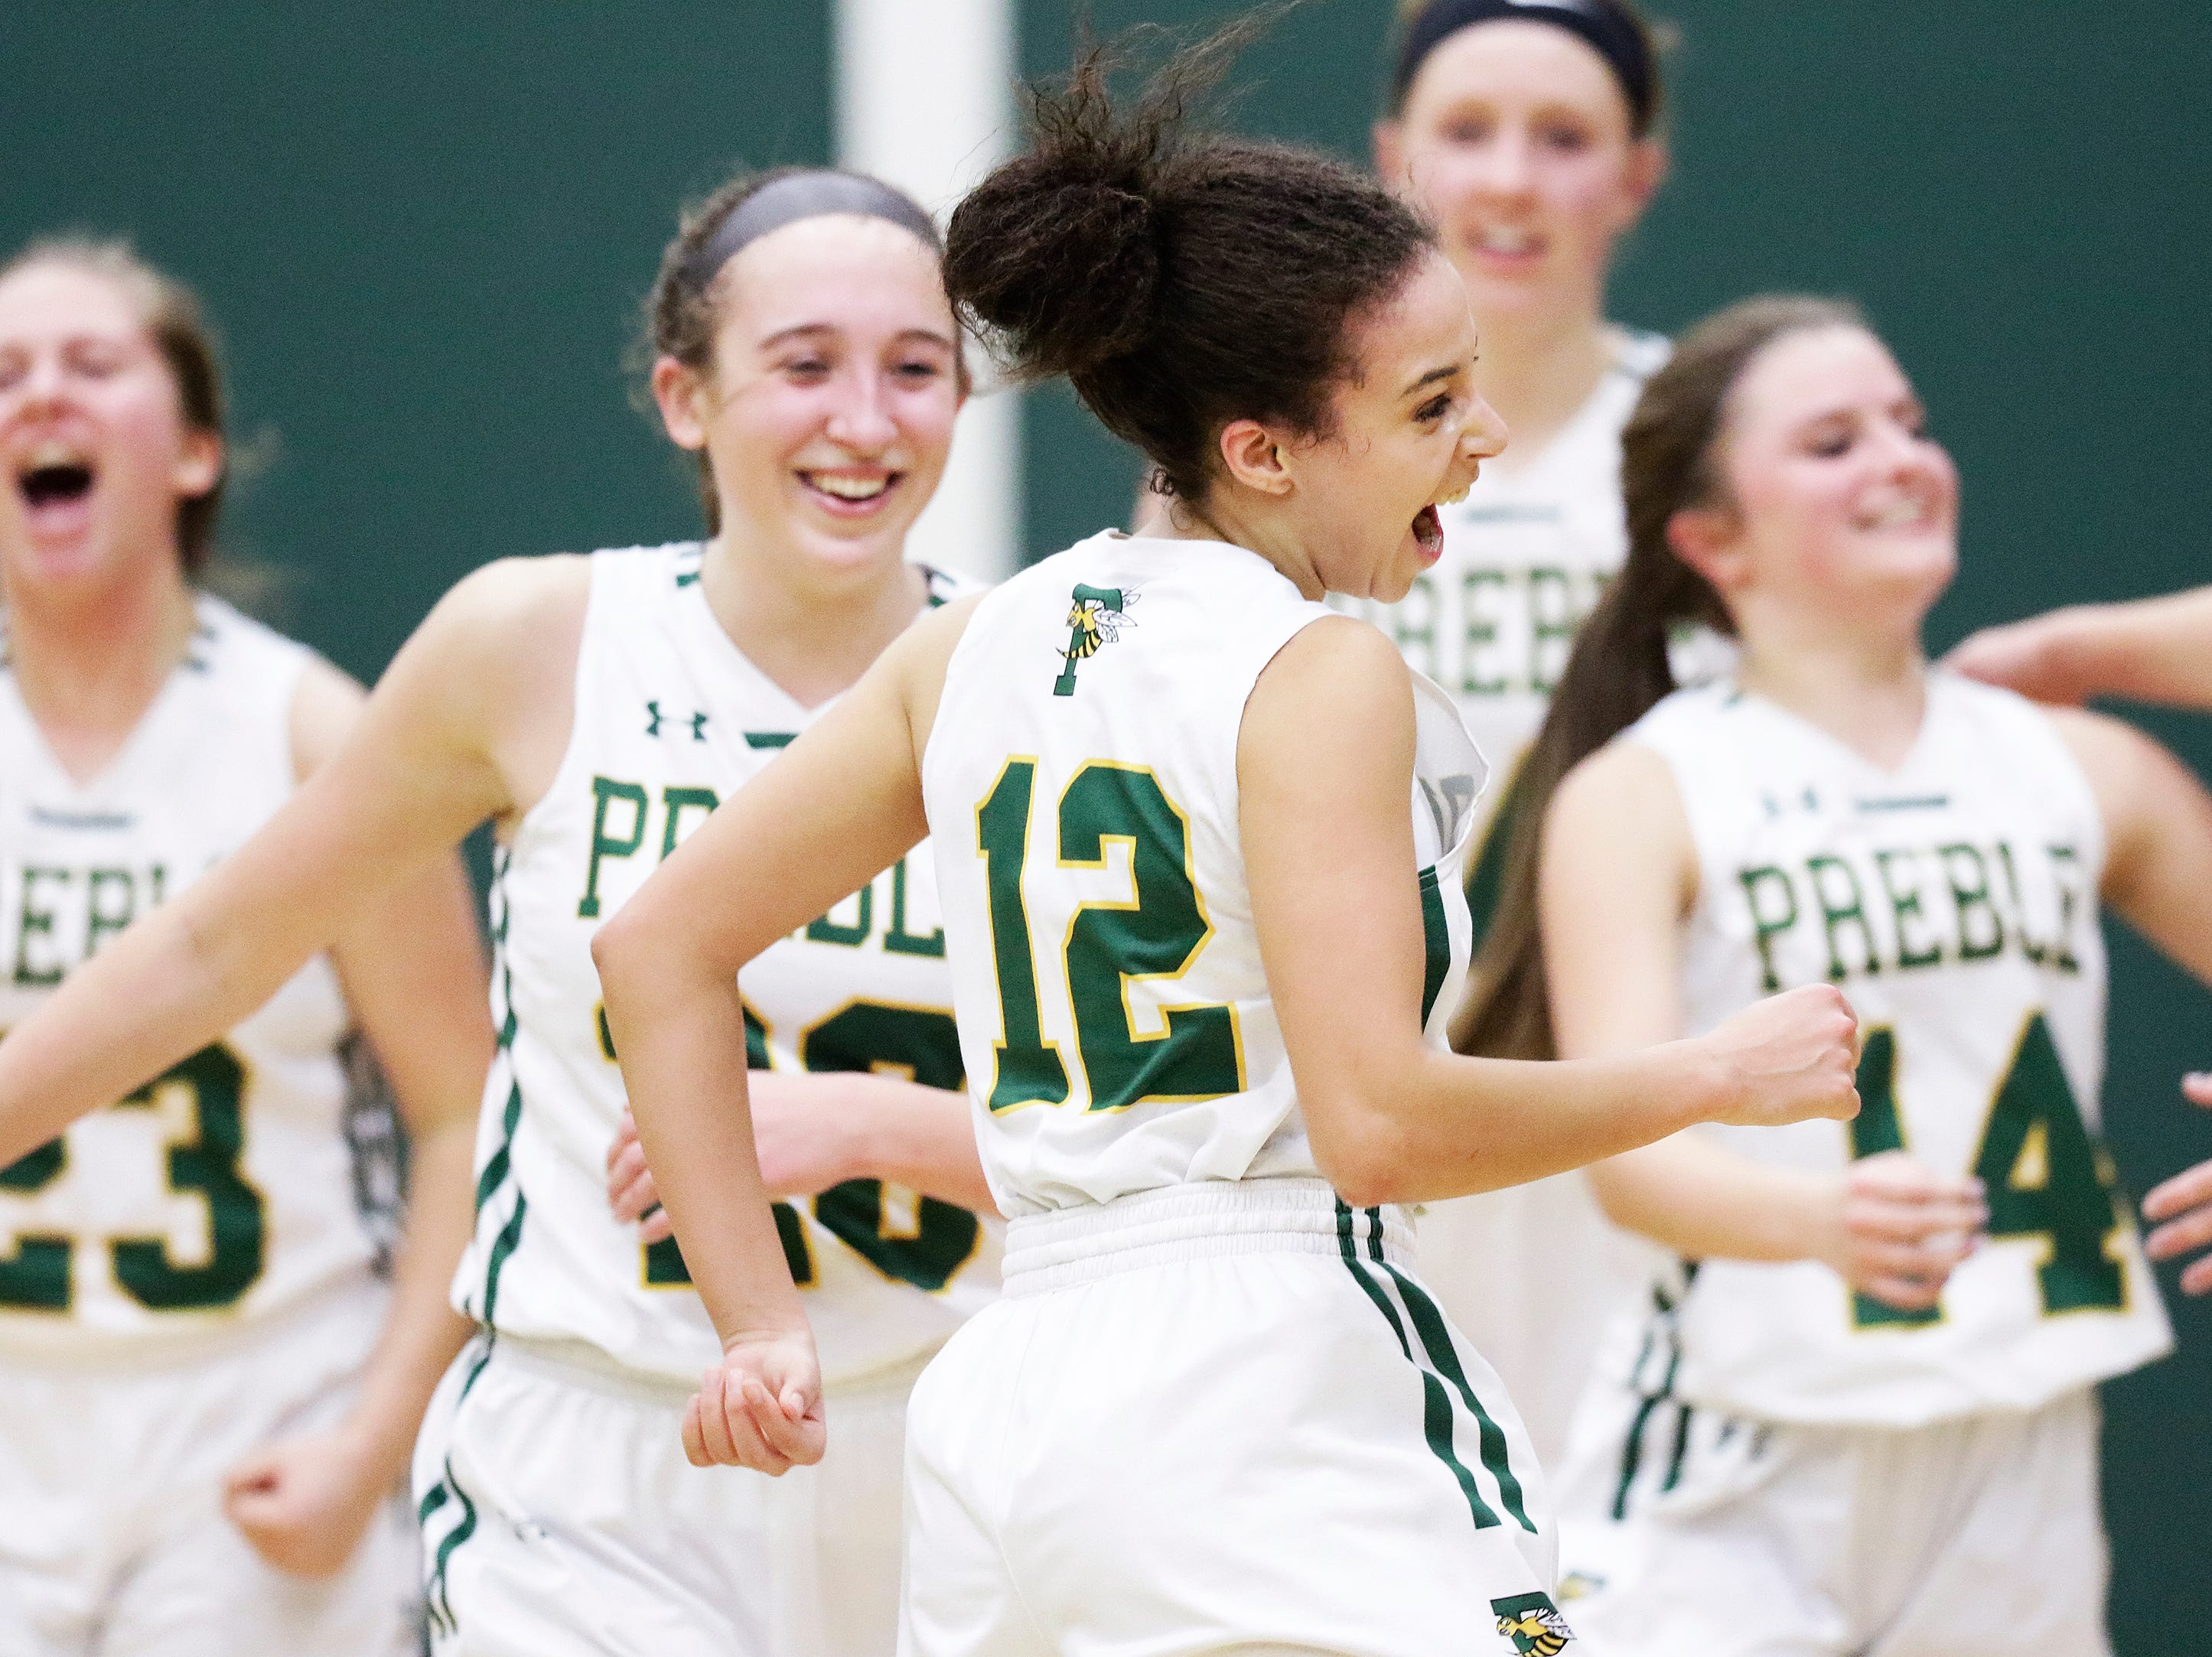 Green Bay Preble's Hannah Beauchamp (12) celebrates after the Hornets defeated De Pere in a girls basketball game at Preble high school on Tuesday, January 8, 2019 in Green Bay, Wis.